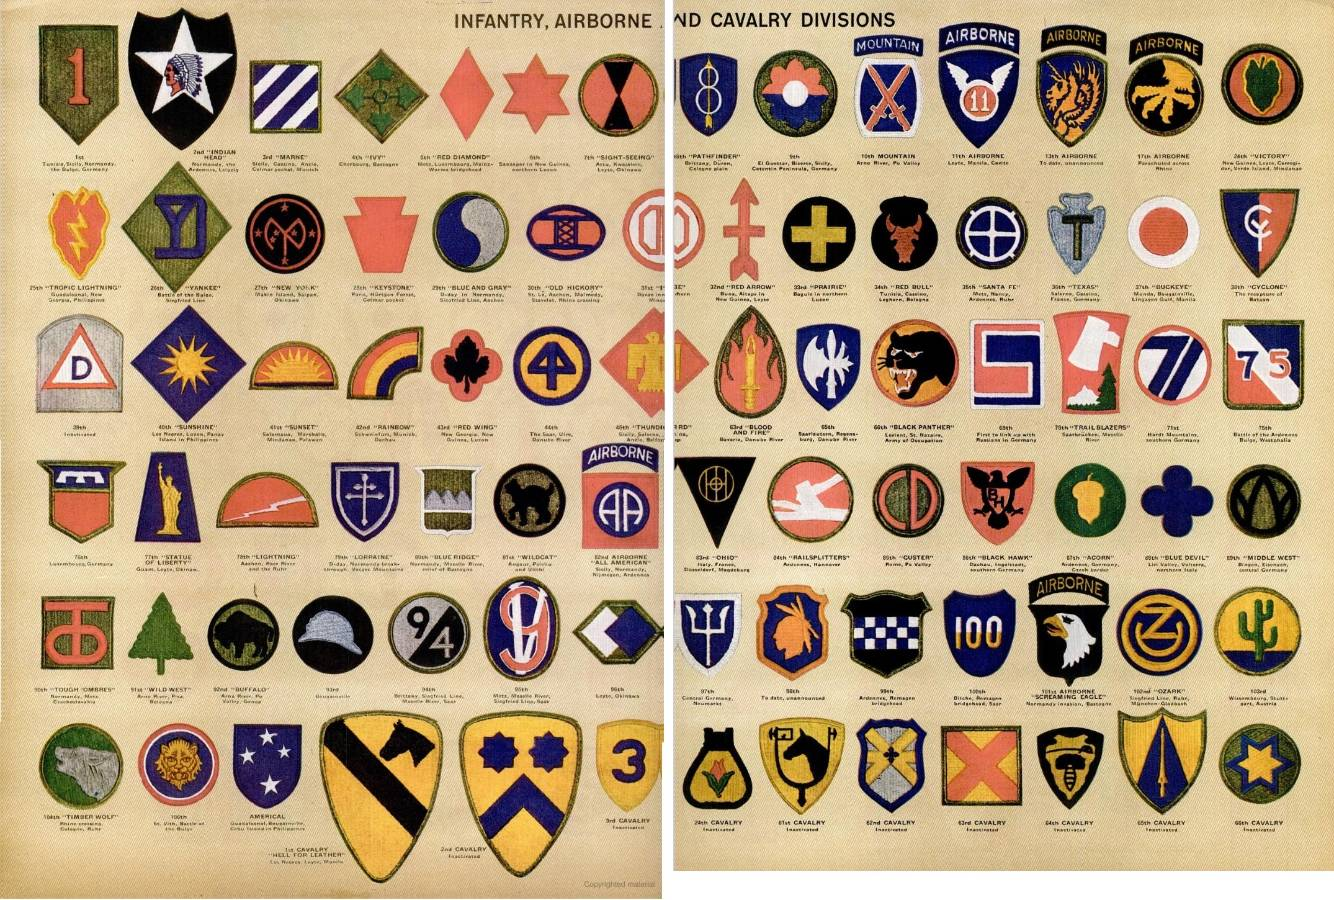 Army Shoulder Insignia - Life, Aug. 6, 1945 - page 3.jpg